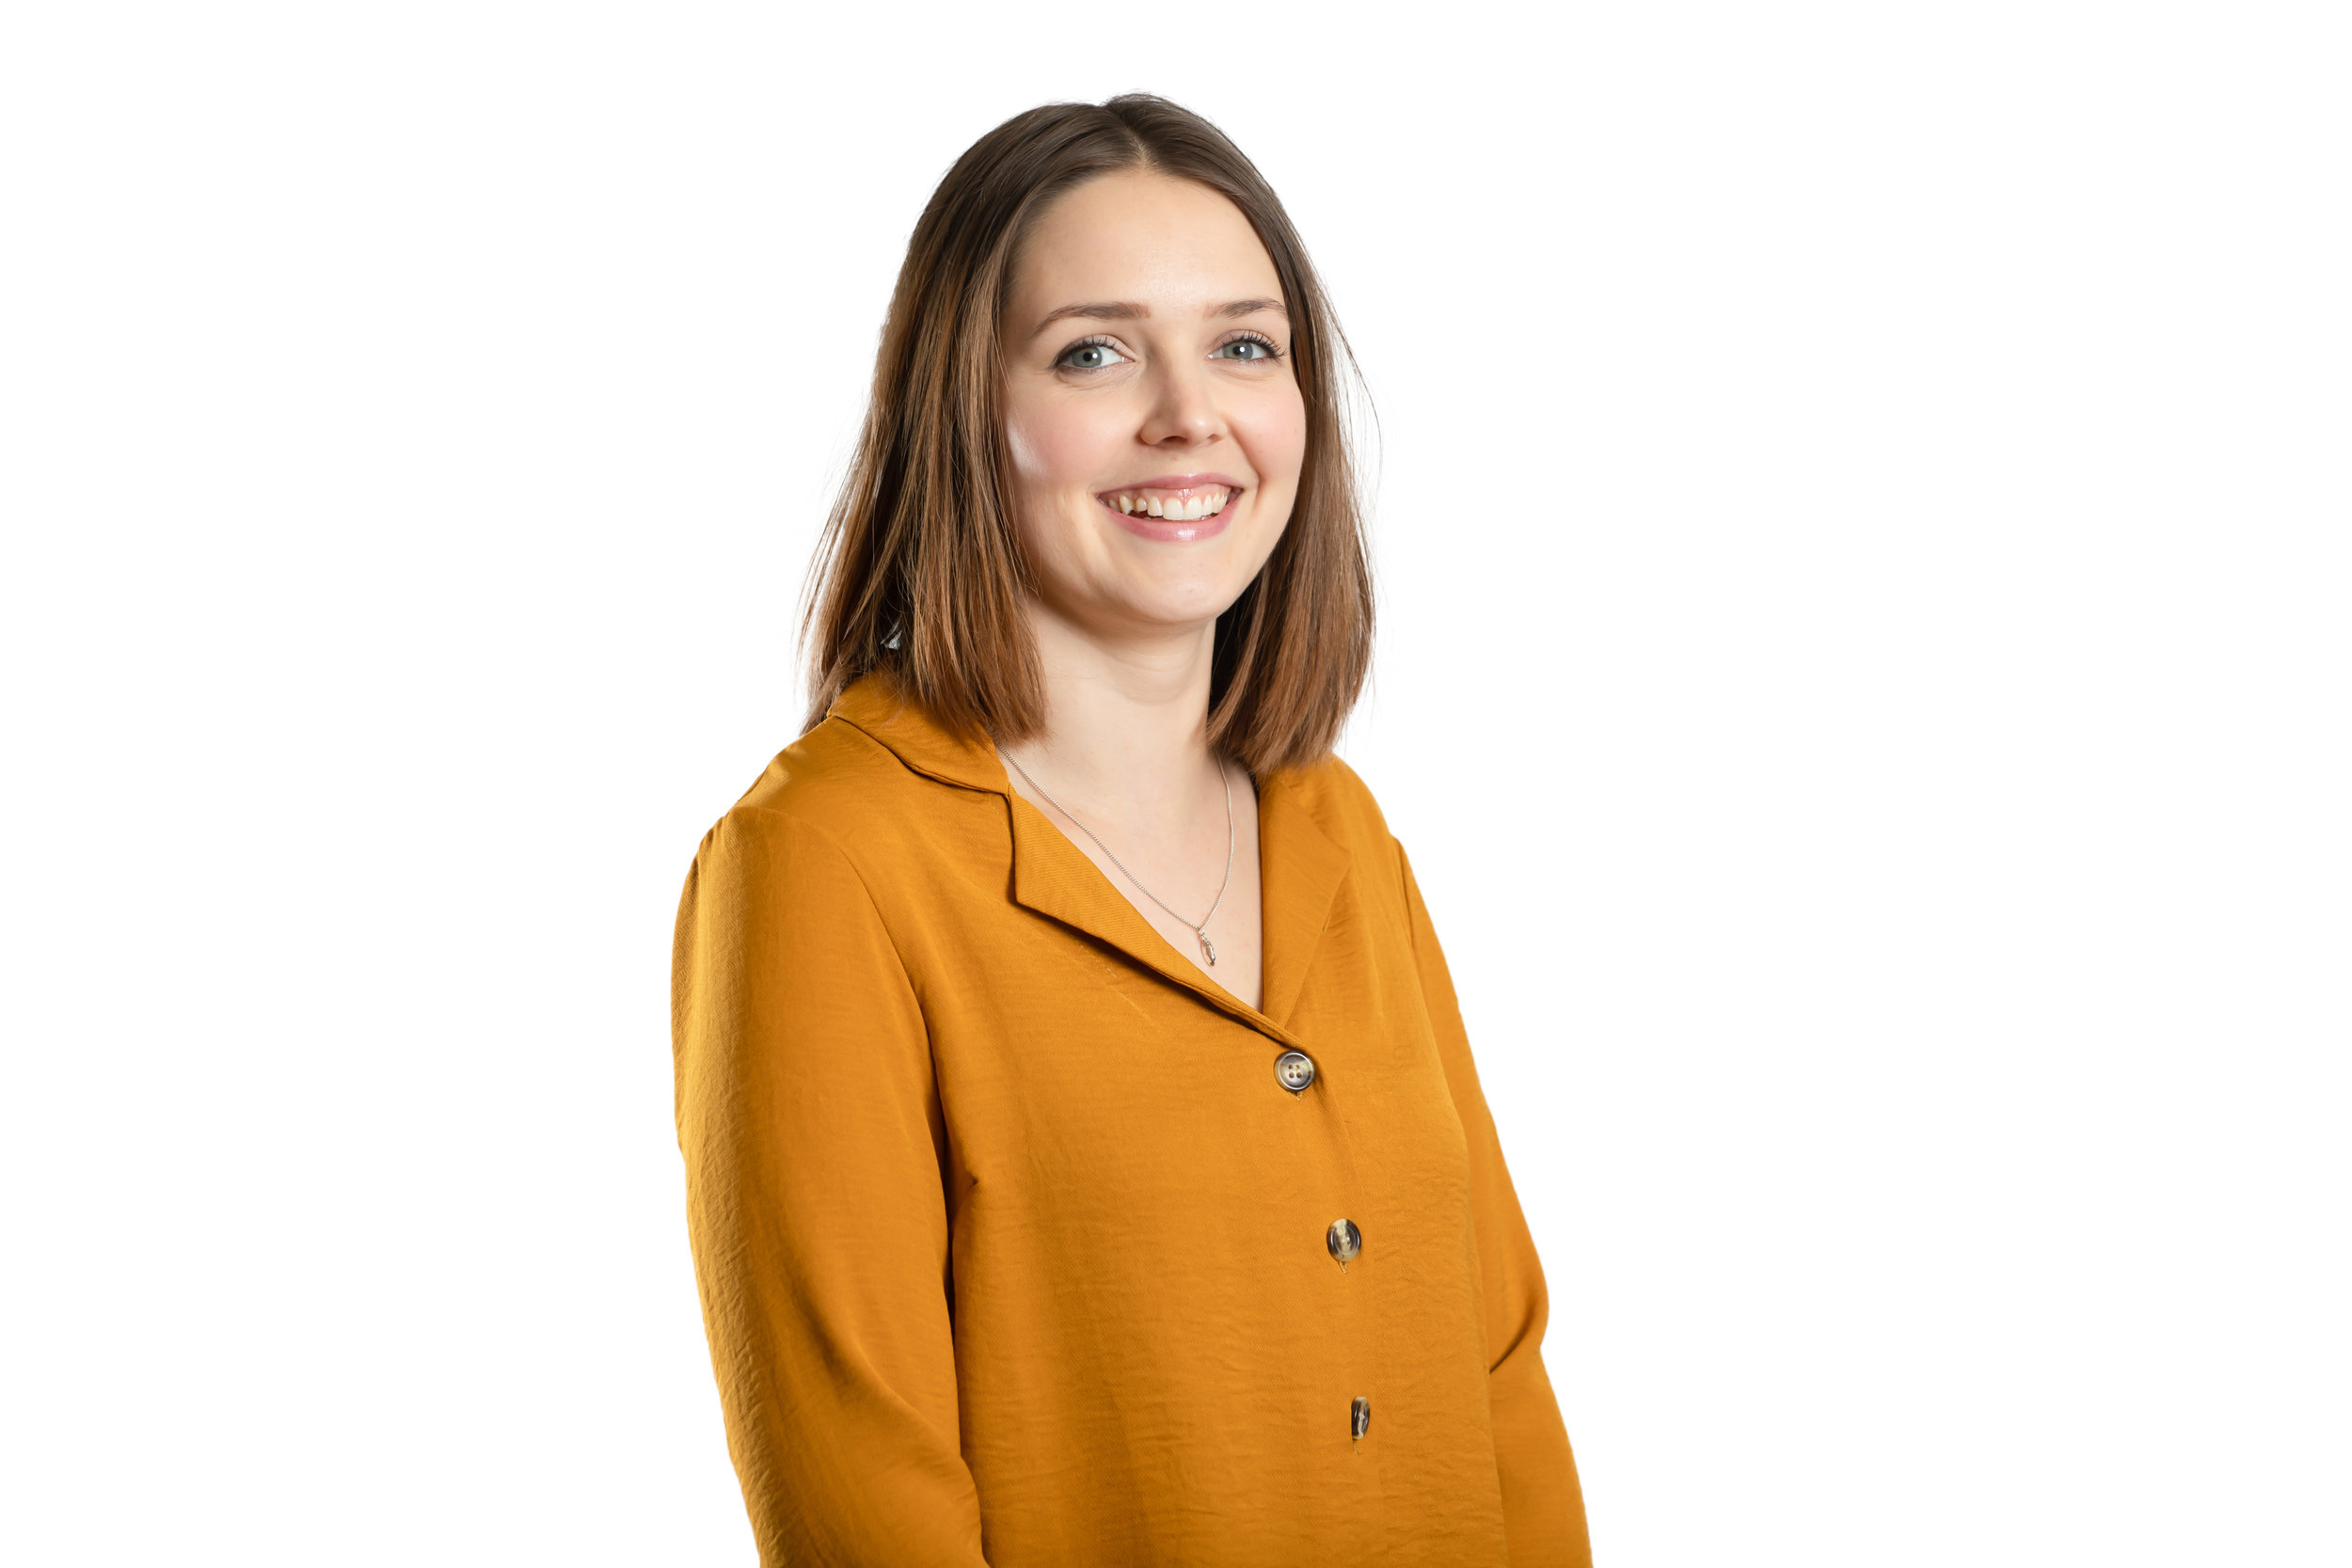 Personal support for every assignee - Meet the Team - Millie Flashman - Jarvis